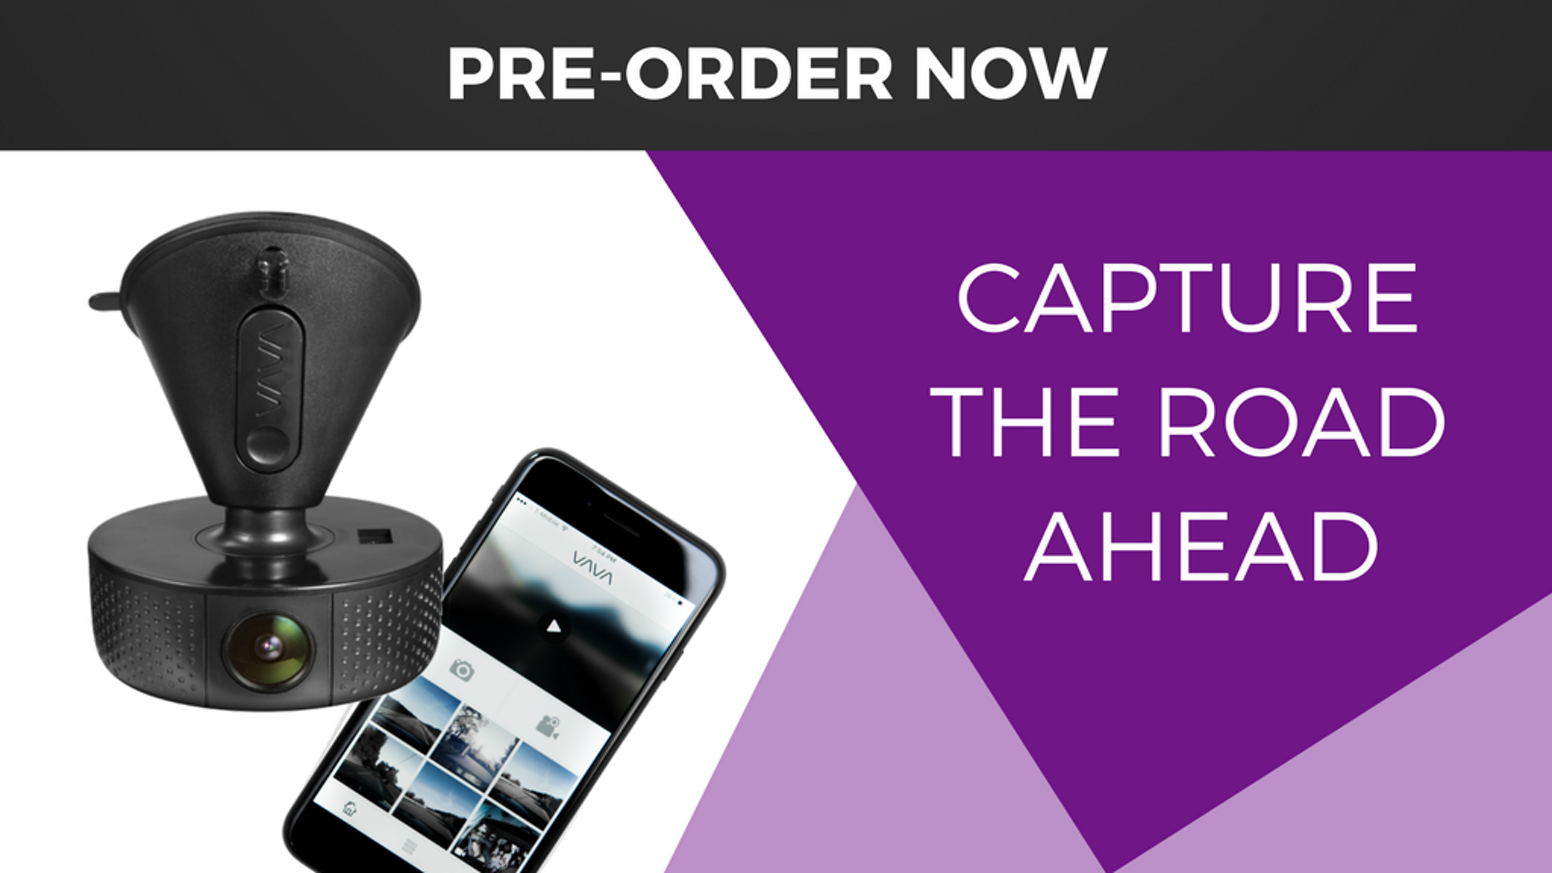 Meet the VAVA Dash Cam - the most versatile car dash camera yet. Do and see more on the road.